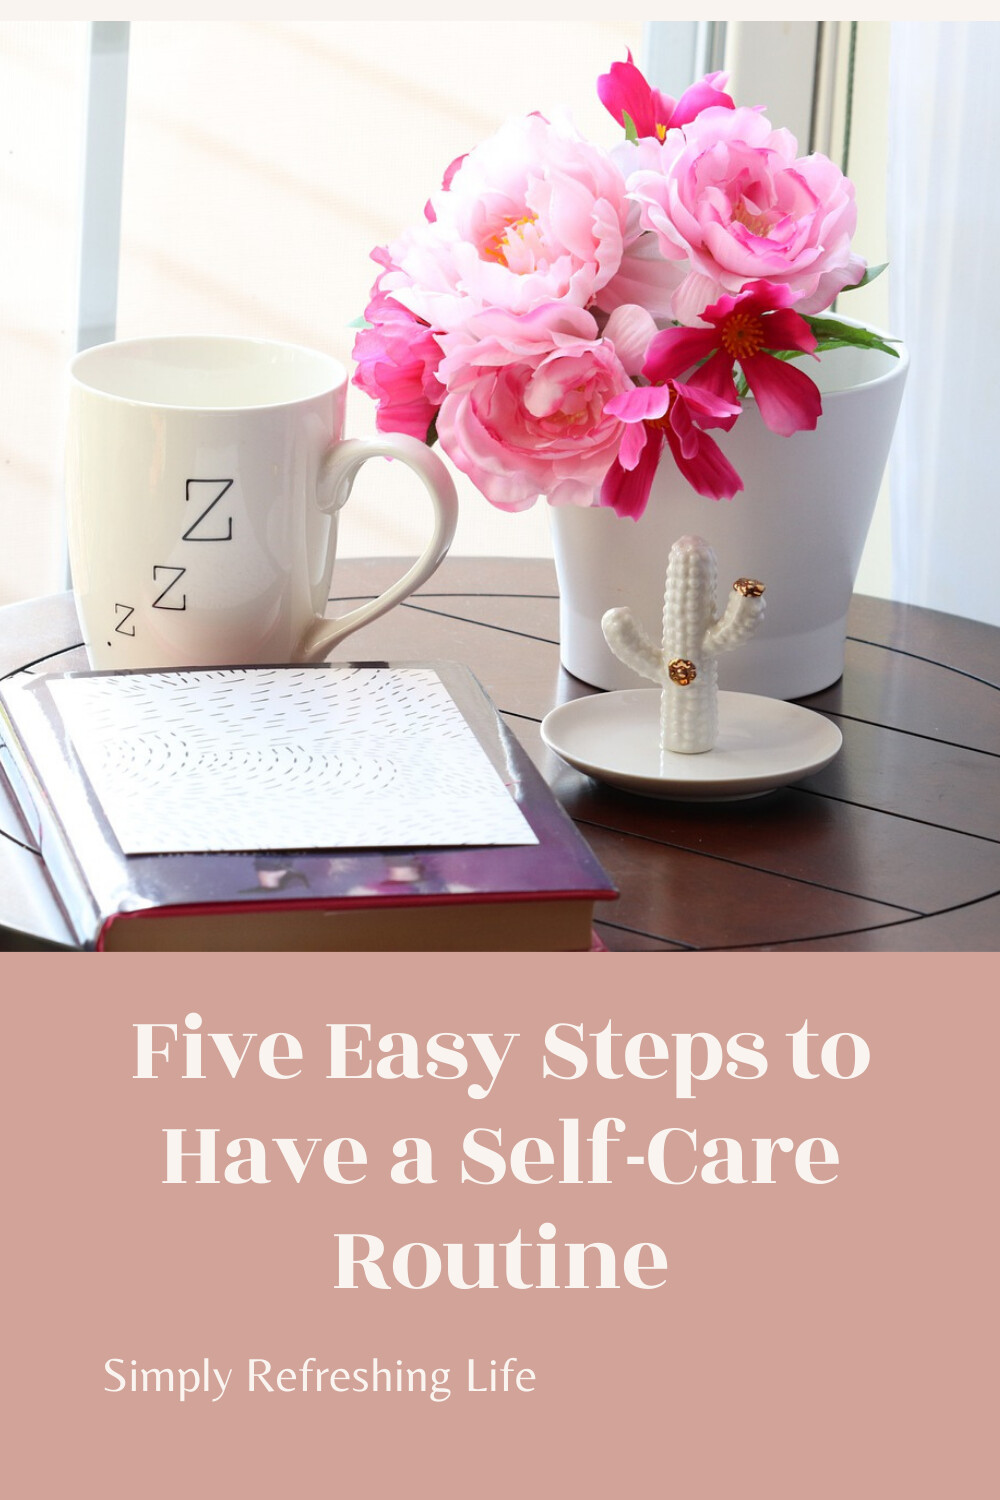 Five Easy Steps to Have a Self-Care Routine